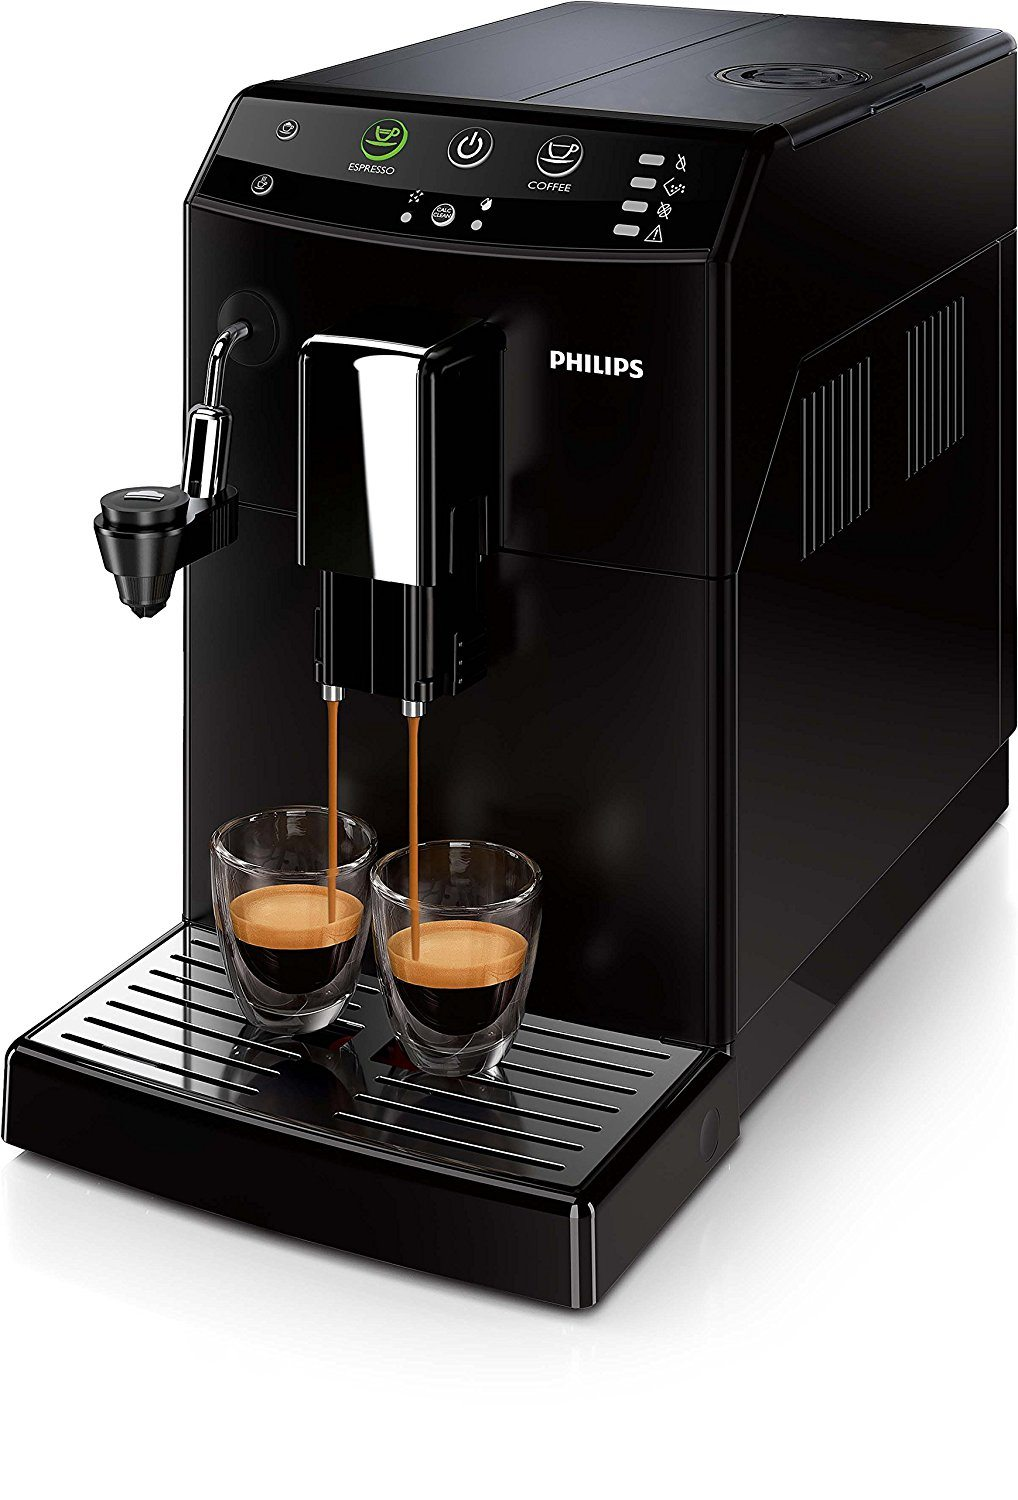 Philips_HD8824-01_serie_3000_expresso_automatique_broyeur